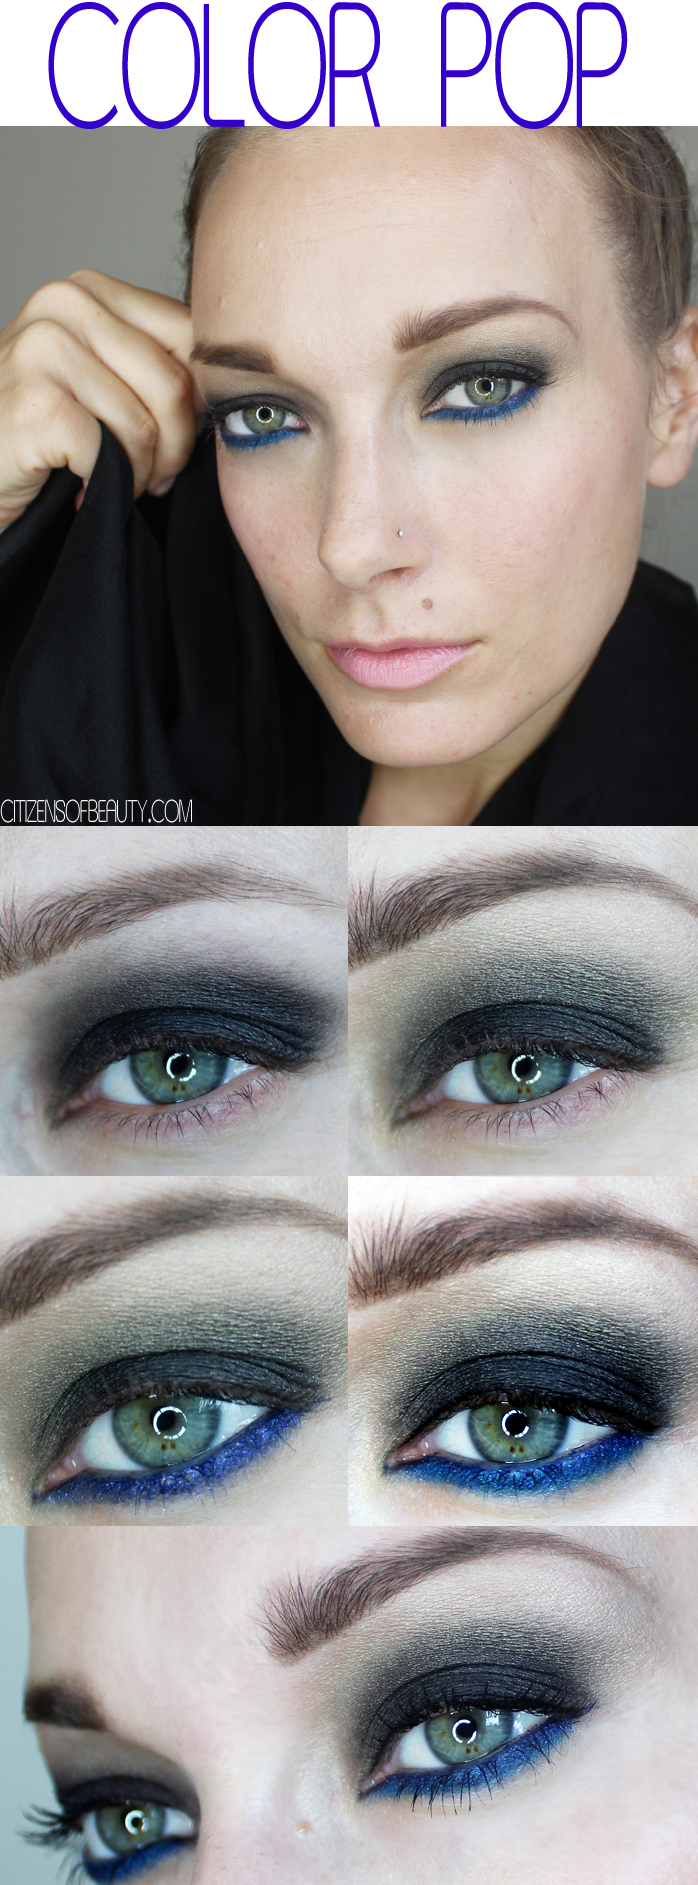 Makeup looks for fall